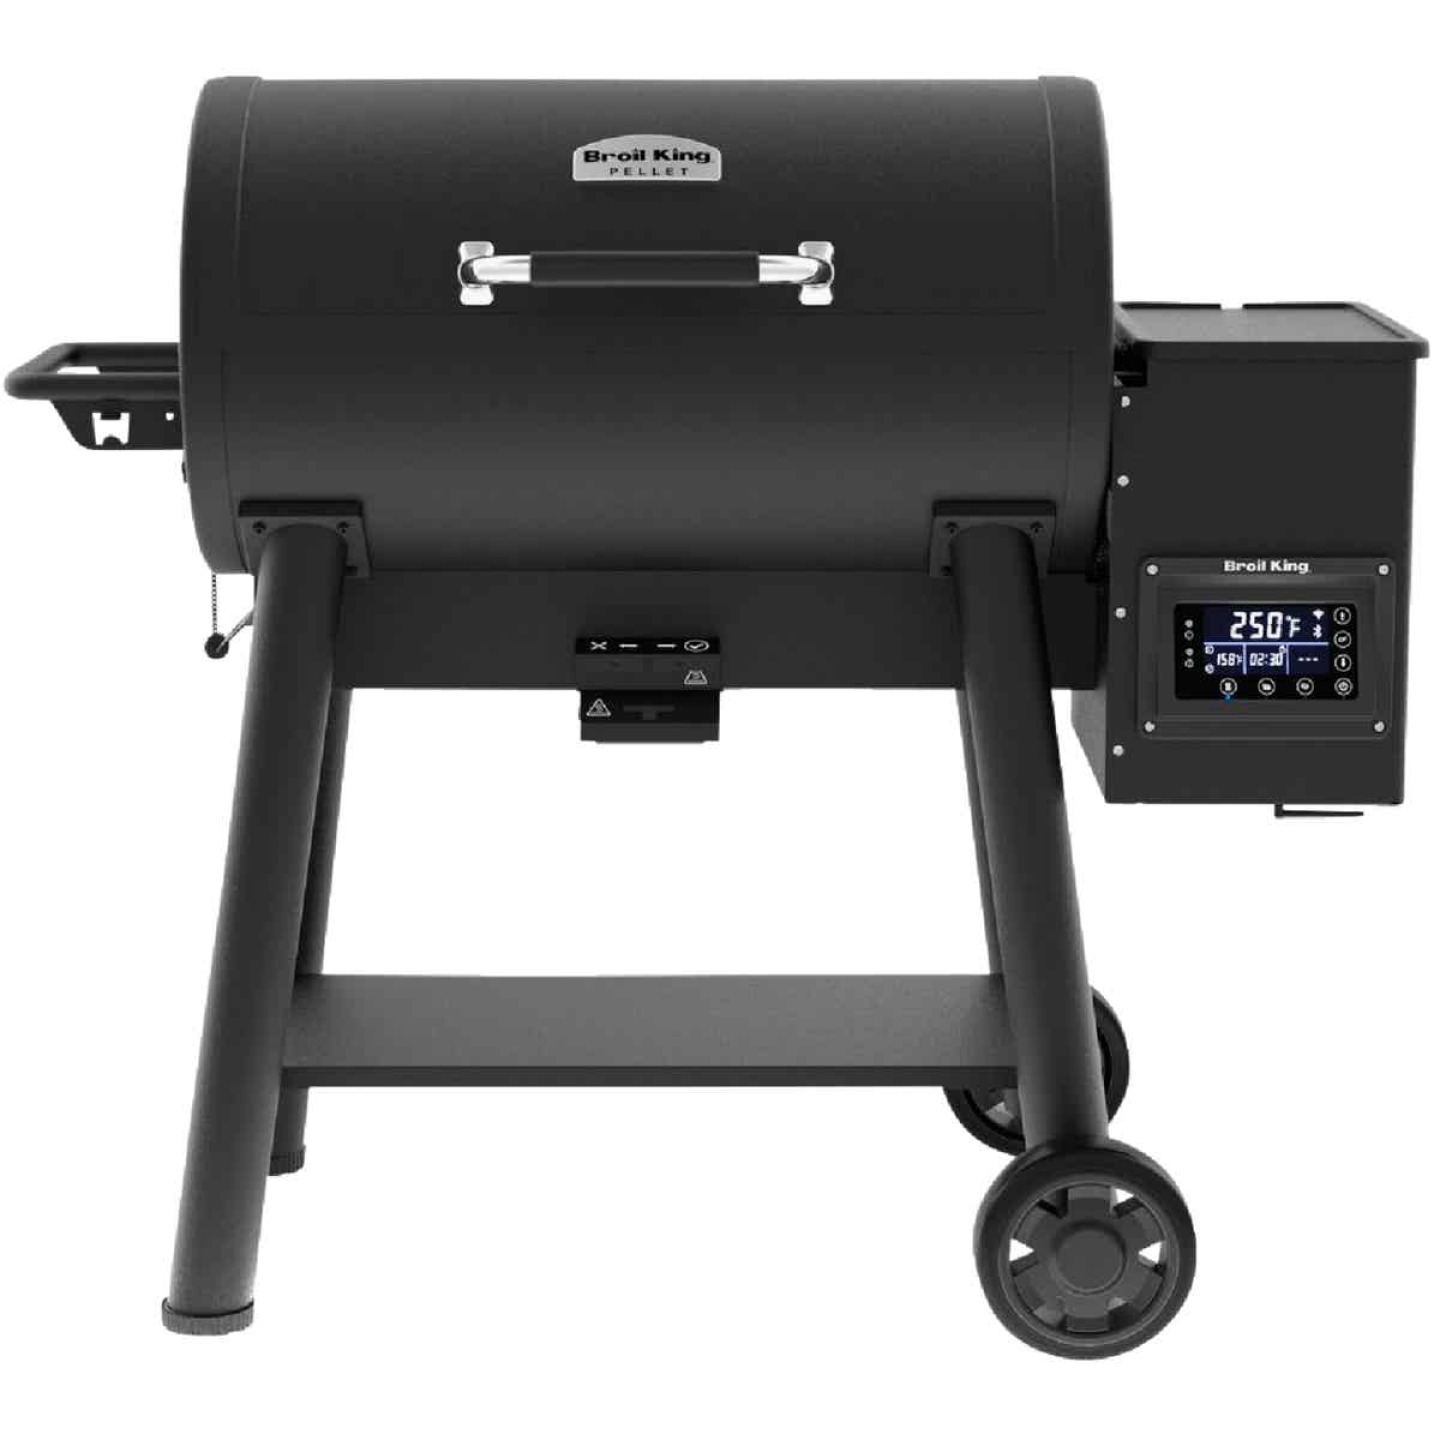 Broil King Baron Pellet 500 Black 800 Sq. In. Grill Image 1